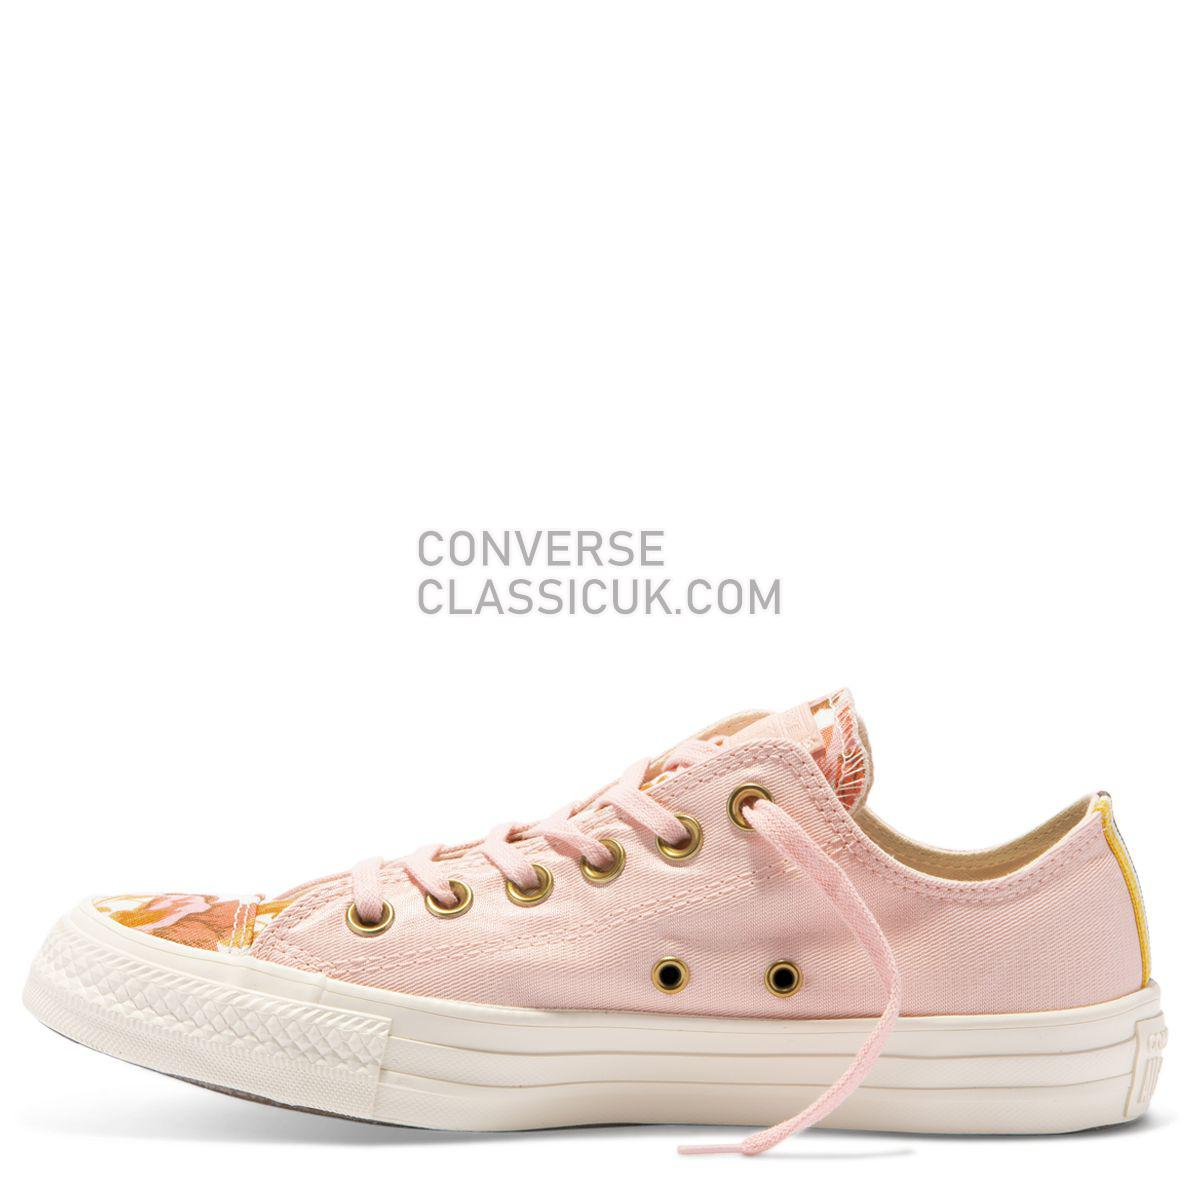 Converse Chuck Taylor All Star Parkway Floral Low Top Storm Pink Womens 561664 Storm Pink/Field Surplus/Egret Shoes